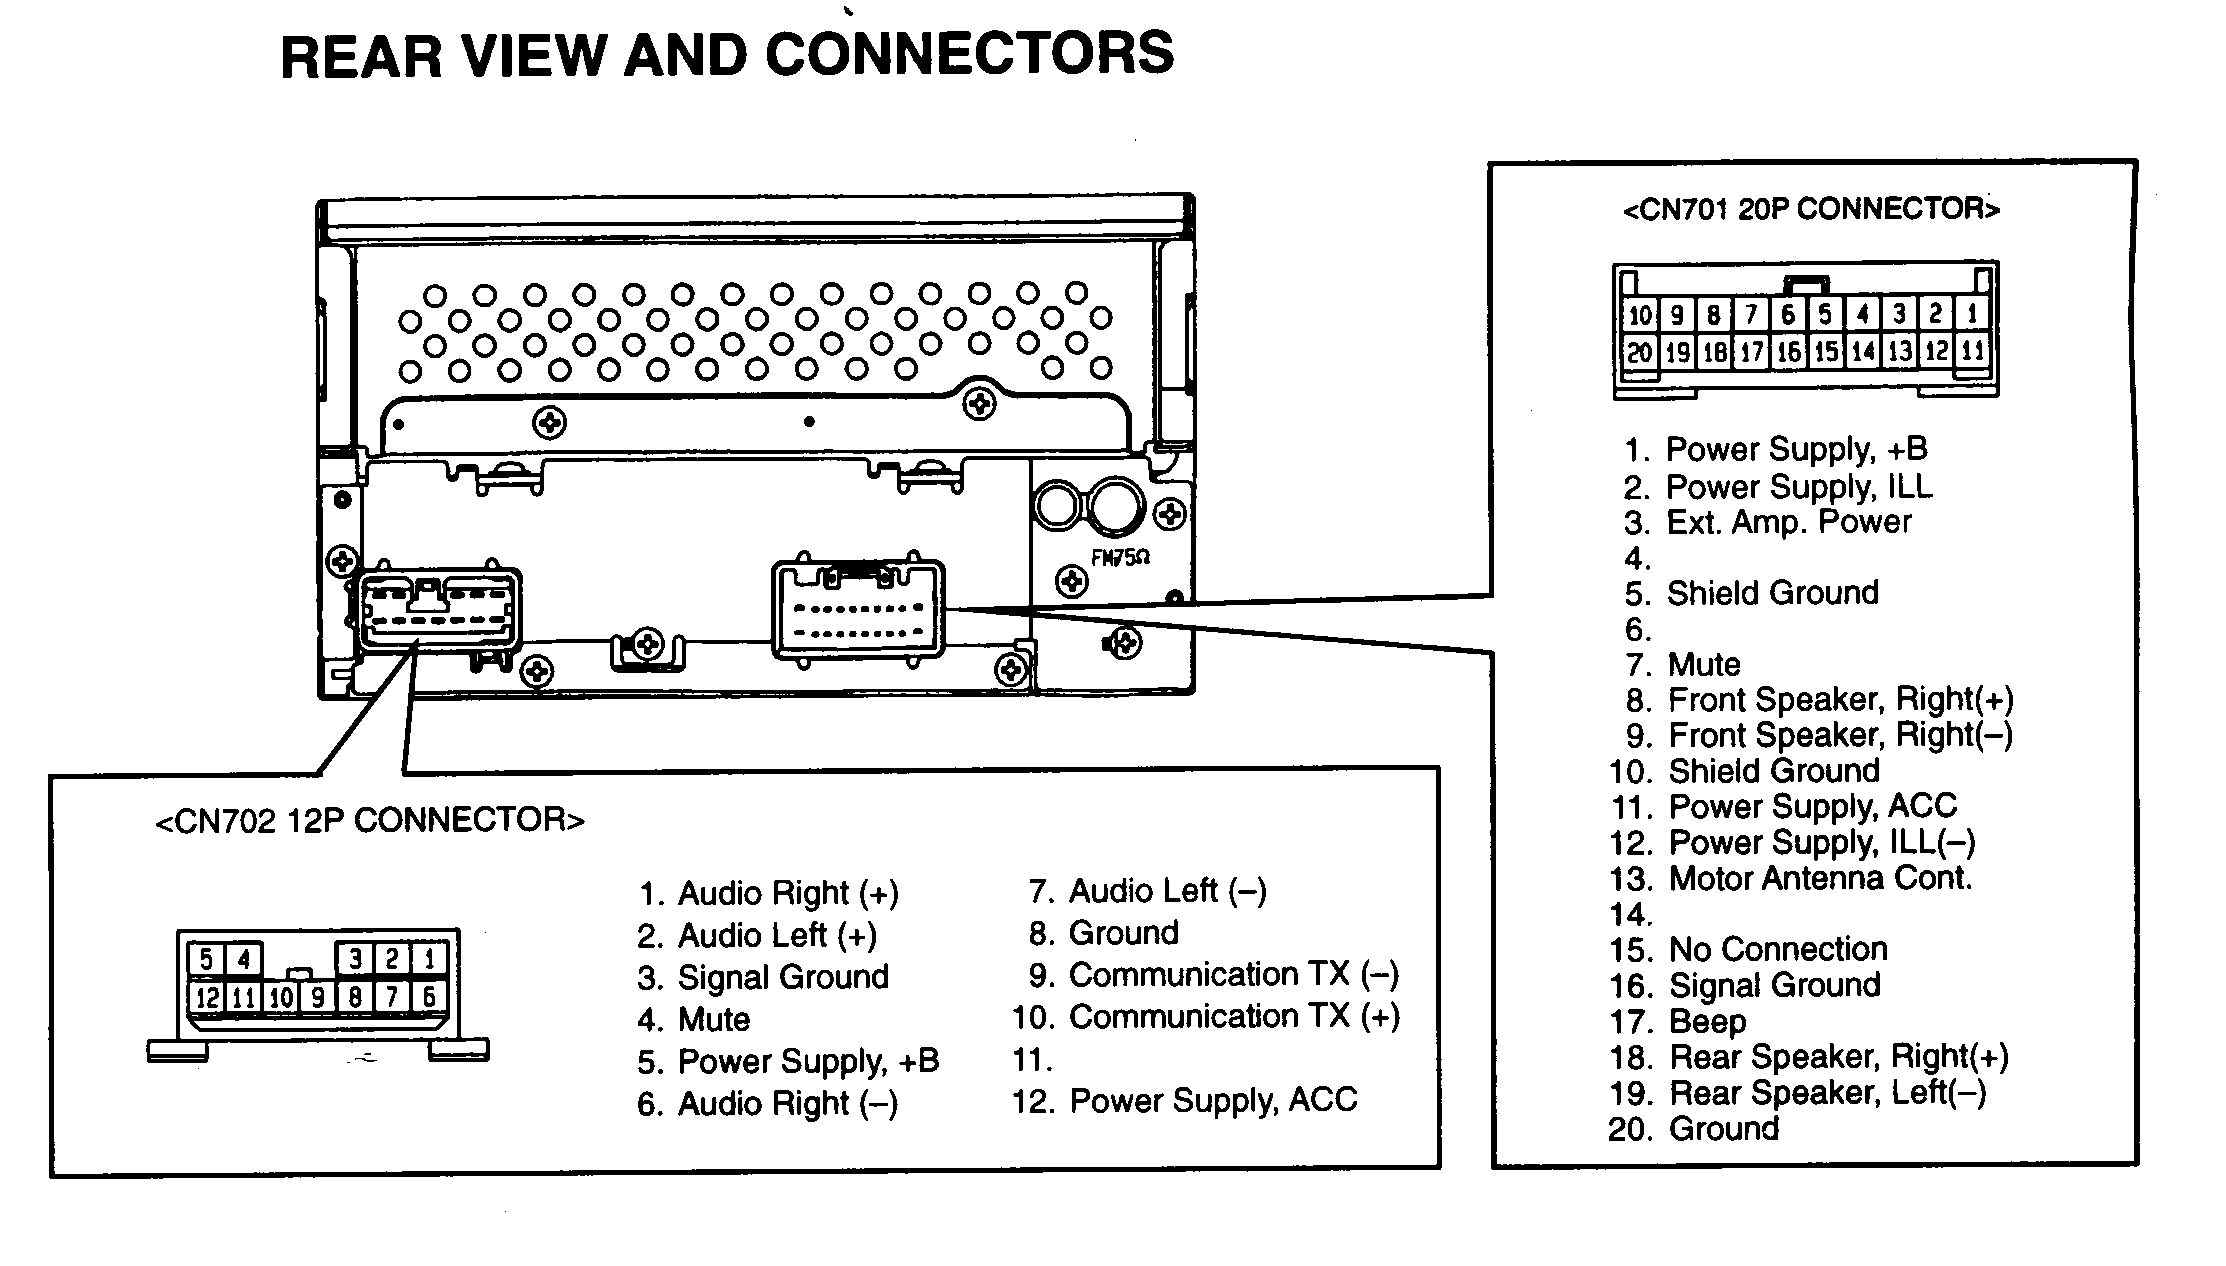 WireHarnessToyota03210201 toyota stereo wiring diagram toyota wiring diagrams instruction 1994 toyota camry radio wiring diagram at readyjetset.co